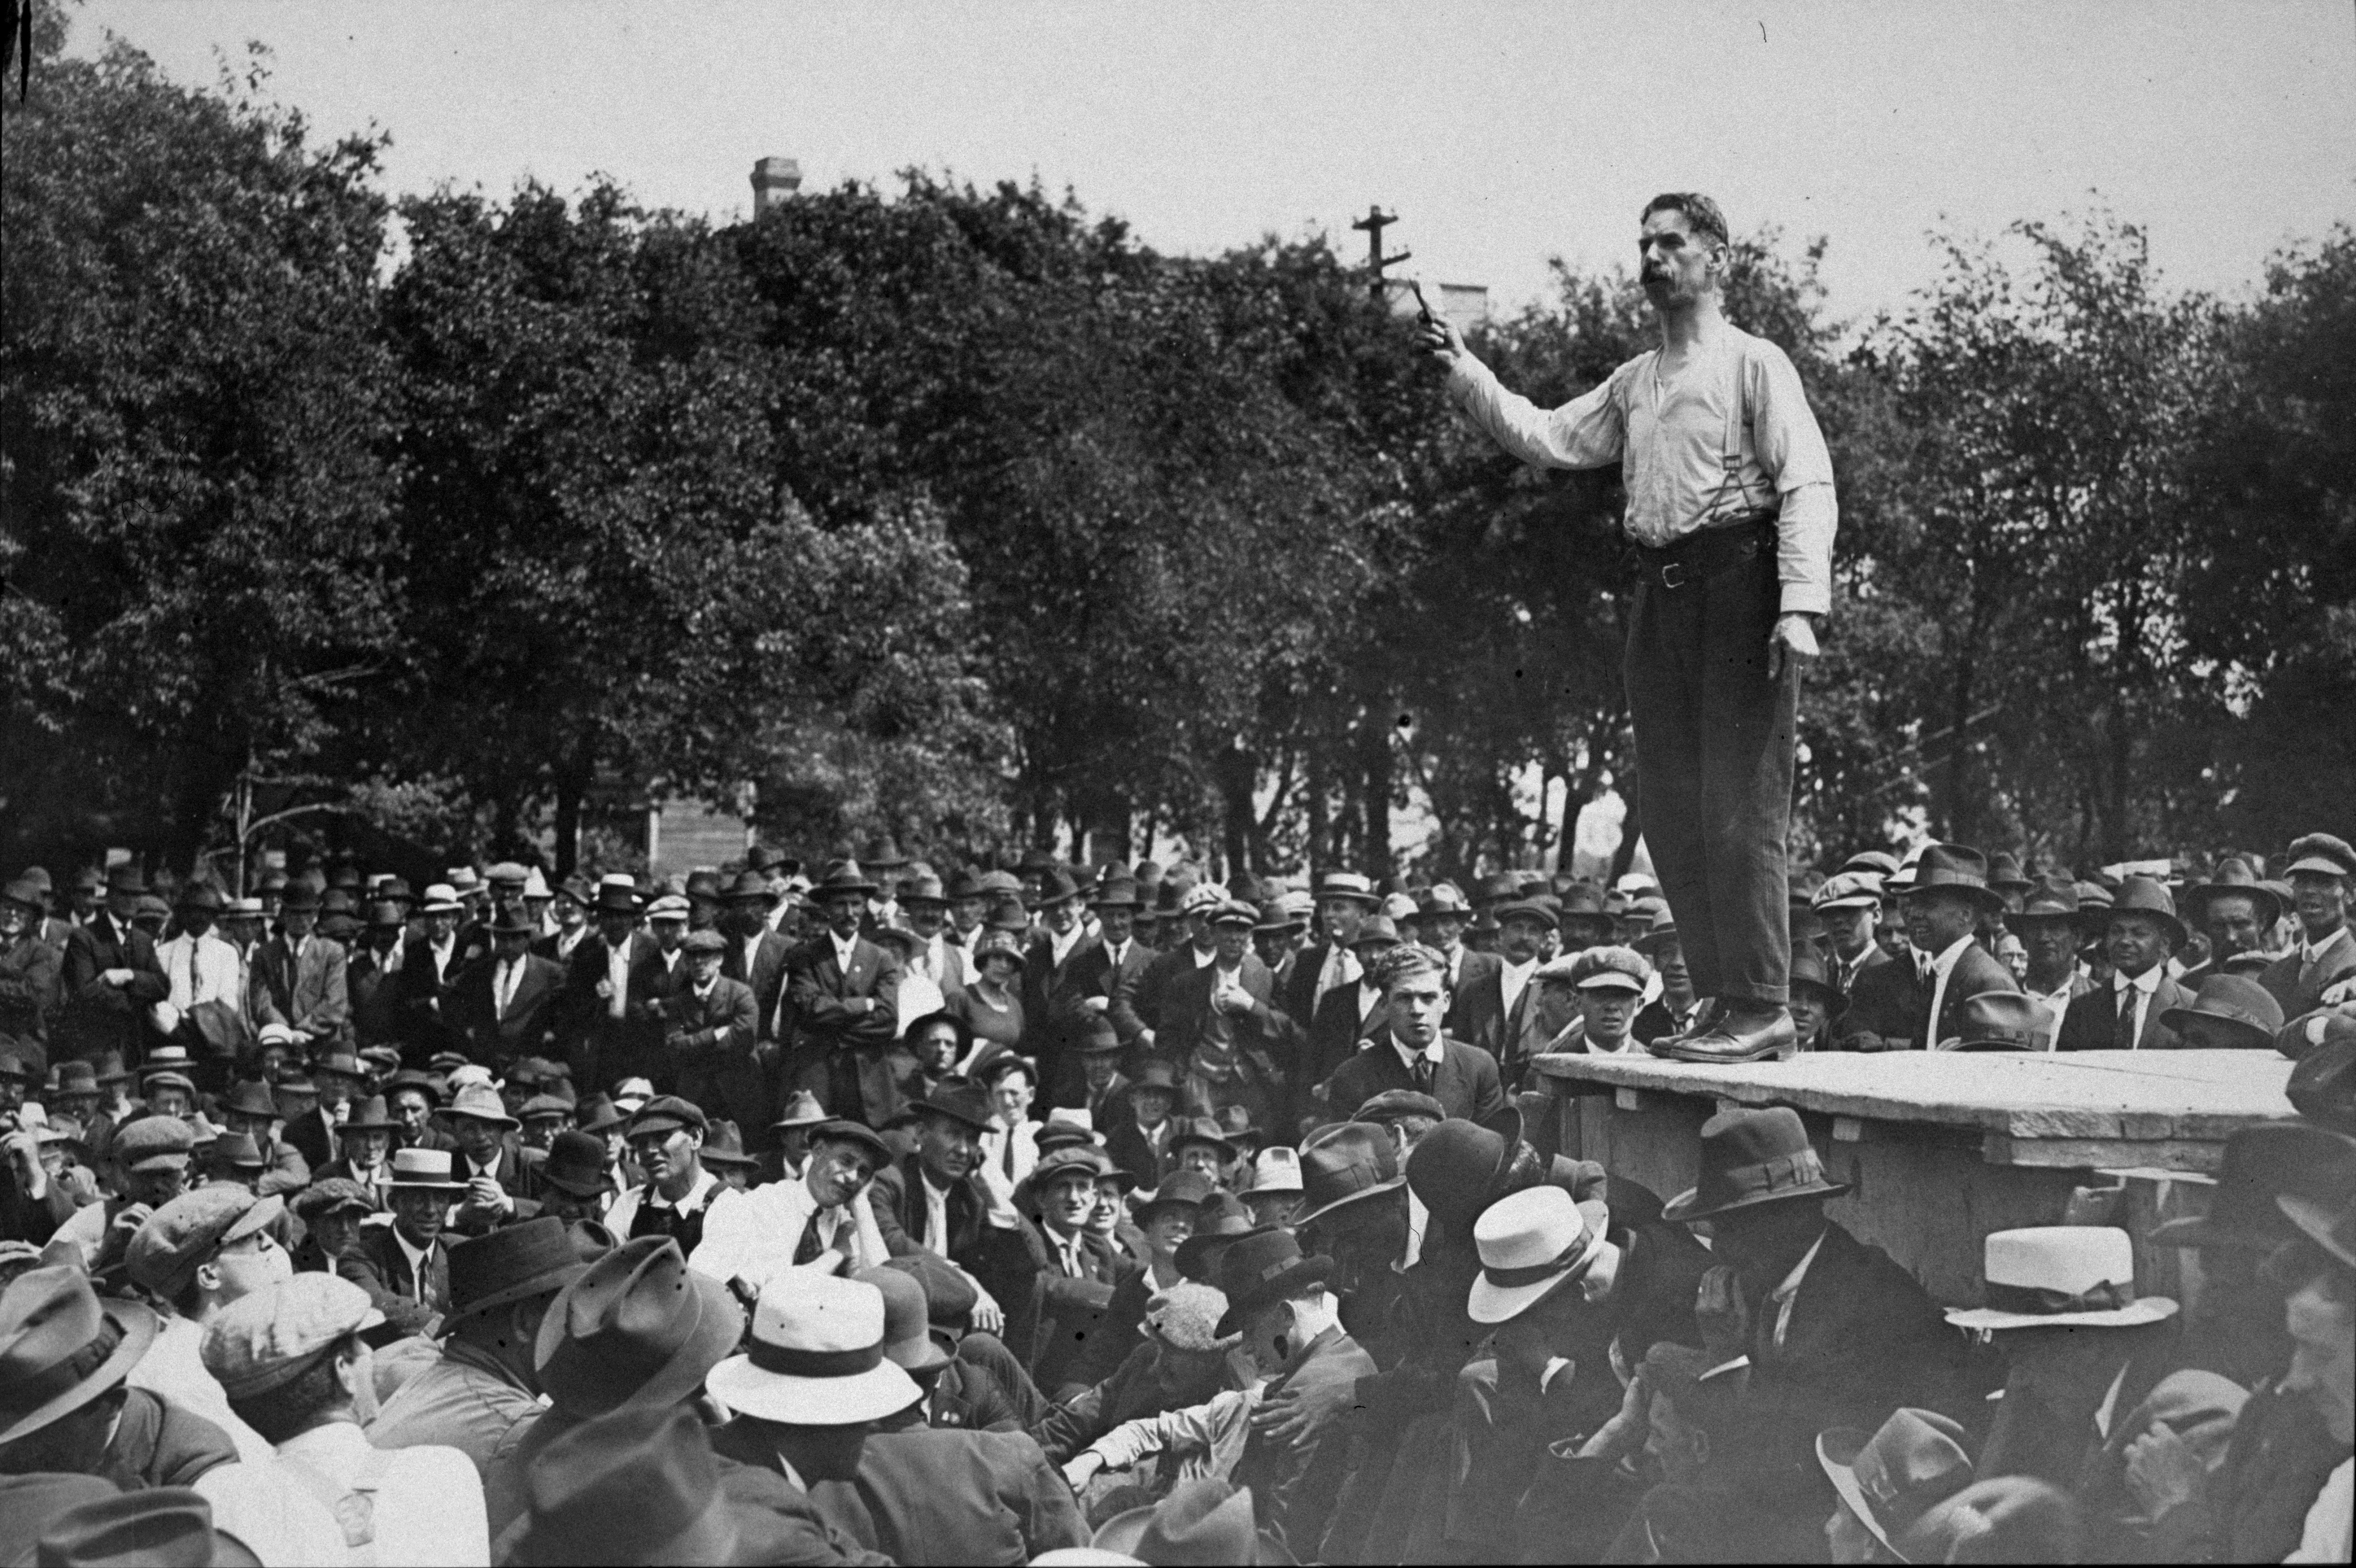 Socialist Roger Bray addresses a crowd of strikers in Victoria Park on June 13, 1919. (Foote collection/Archives of Manitoba)